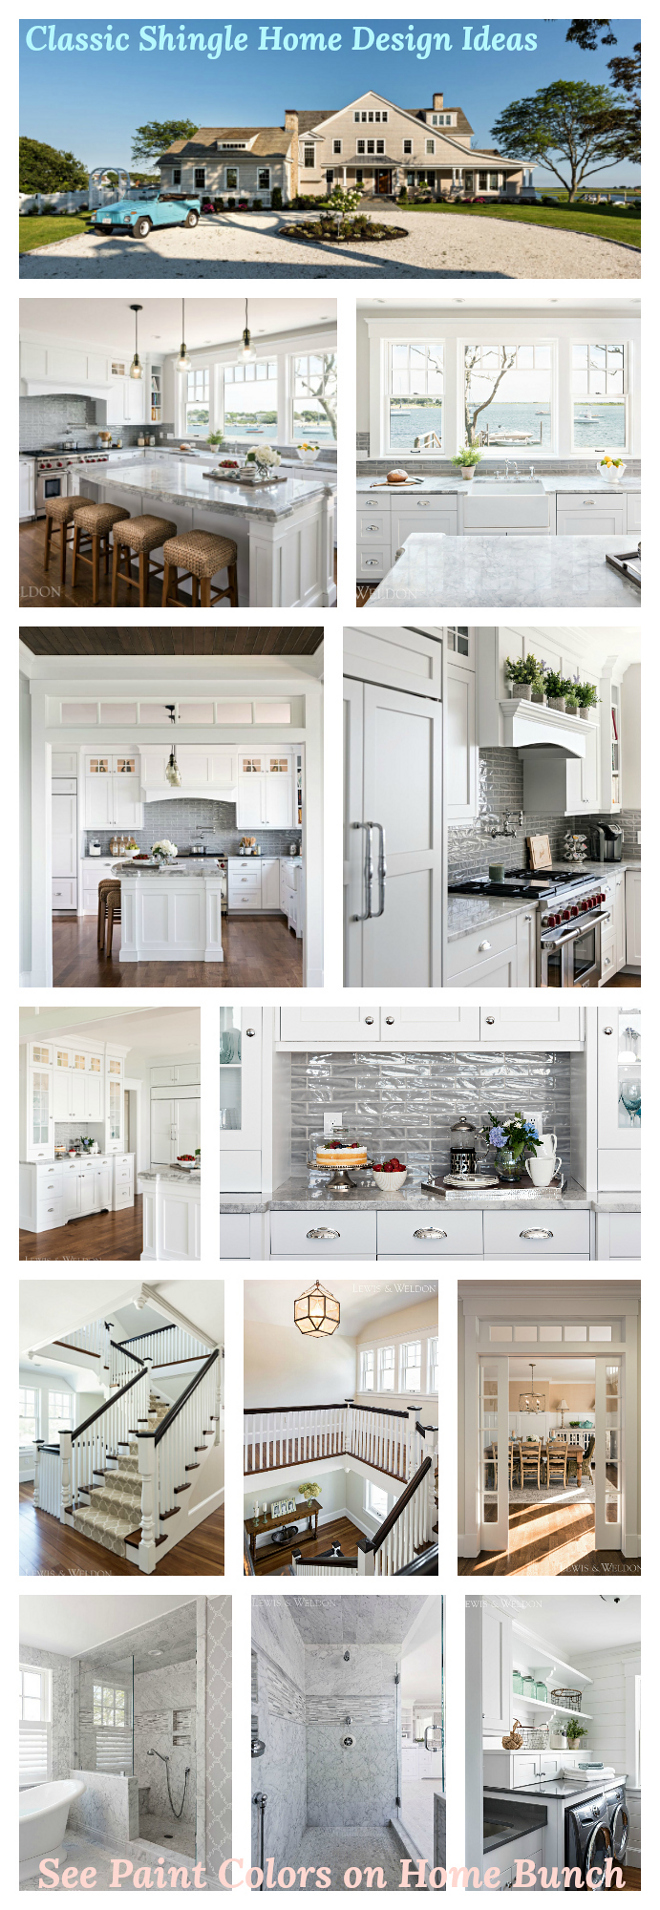 Classic Shingle Home Design Ideas. Classic Shingle Home Design Ideas. Classic Shingle Home Design Ideas See paint colors and more sources on Home Bunch #ClassicShingleHome #ClassicShingleHomeDesign#ClassicShingleHomeDesignIdeas